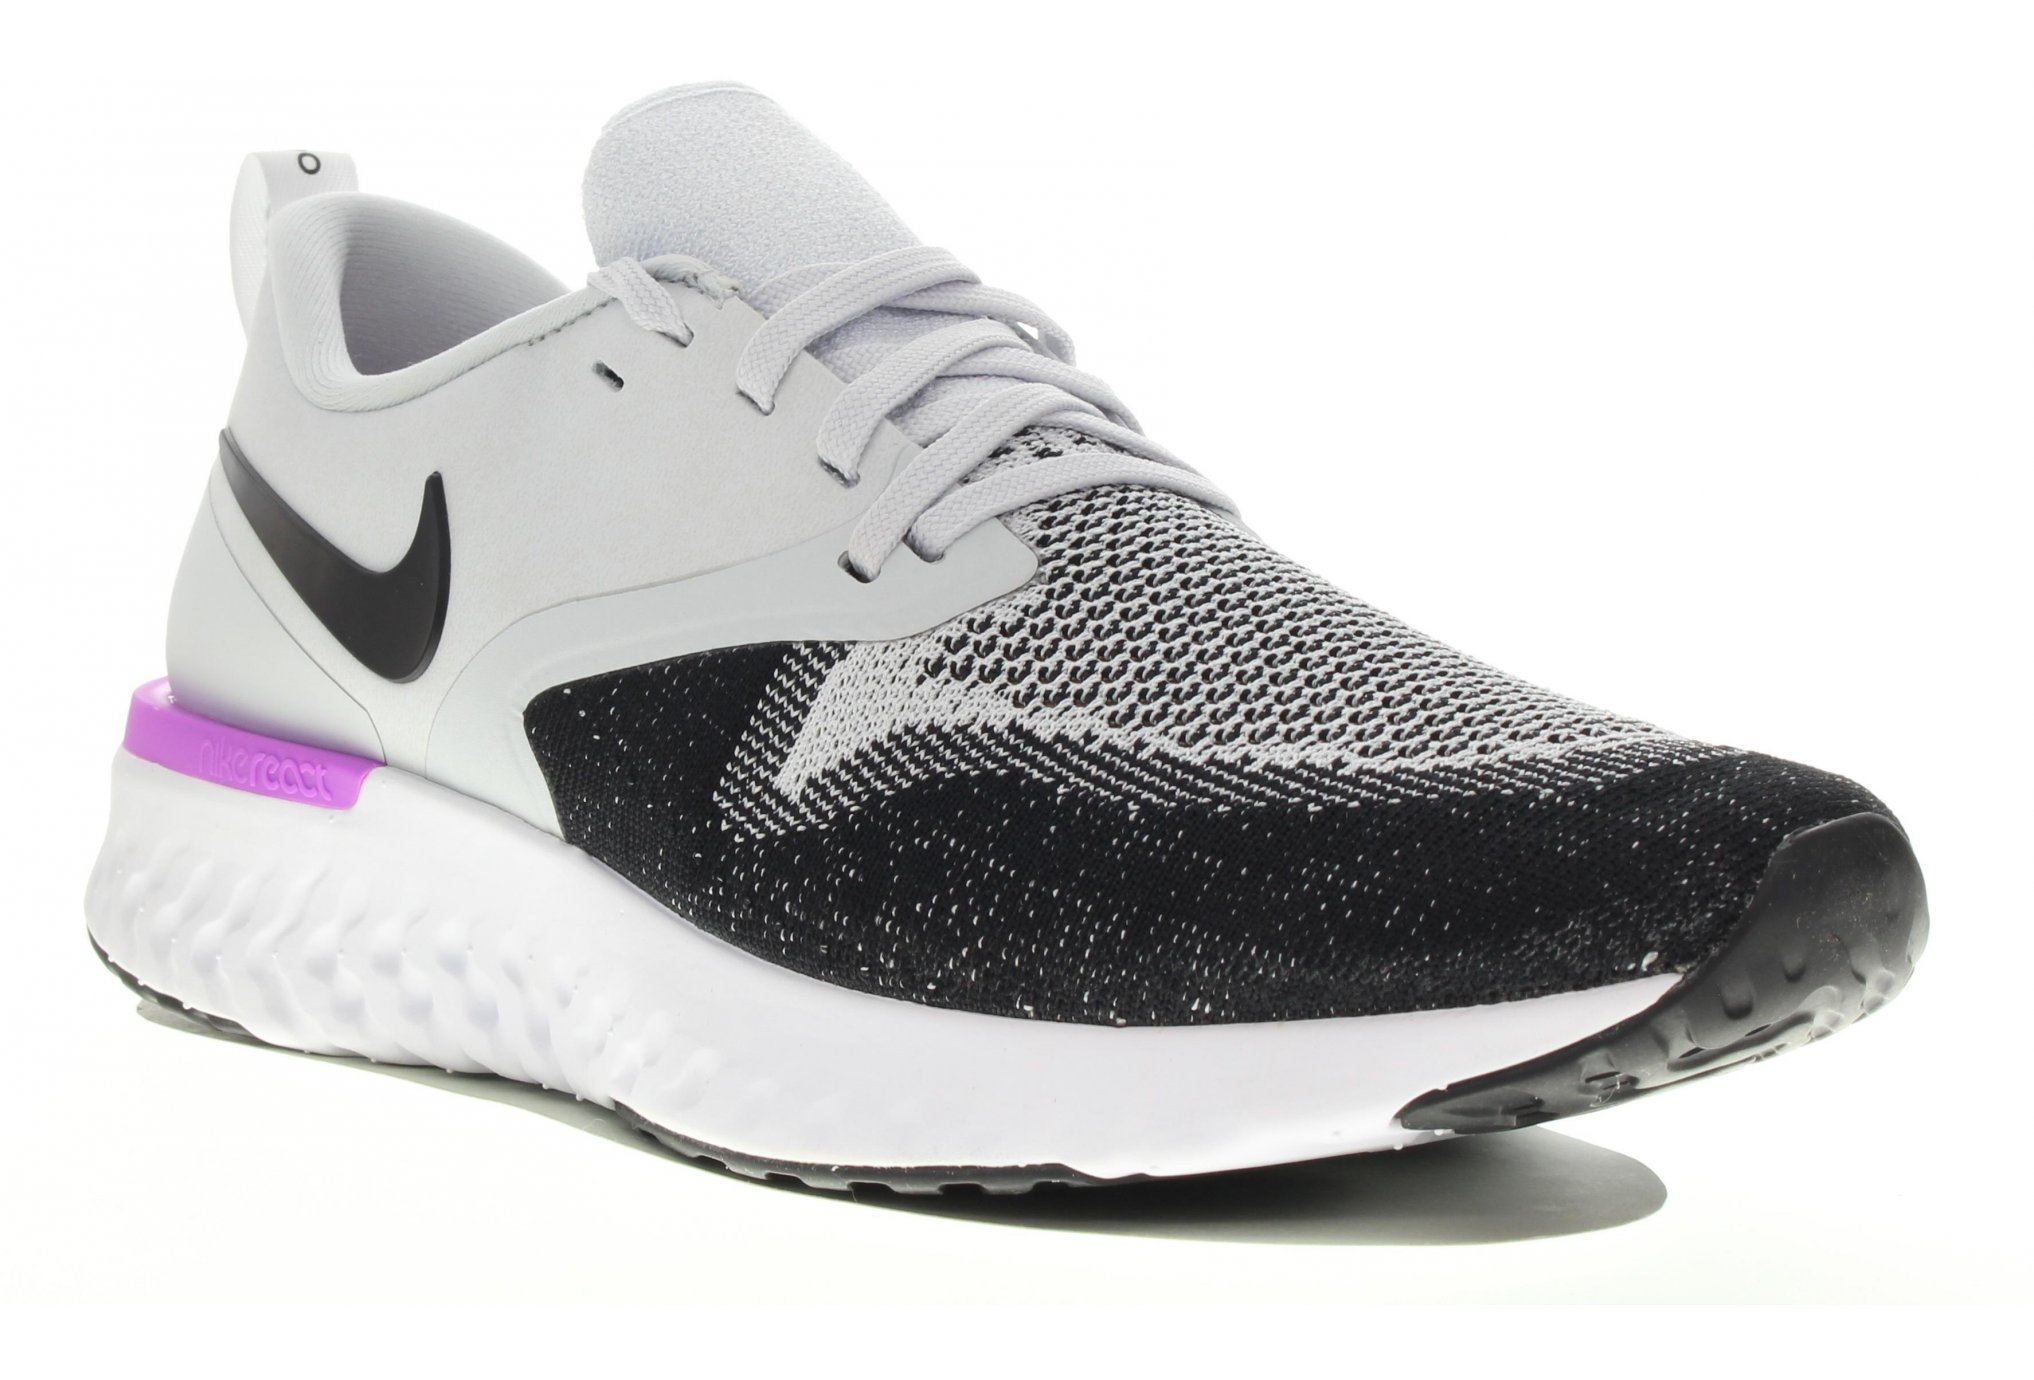 Nike Odyssey React Flyknit 2 M Chaussures homme